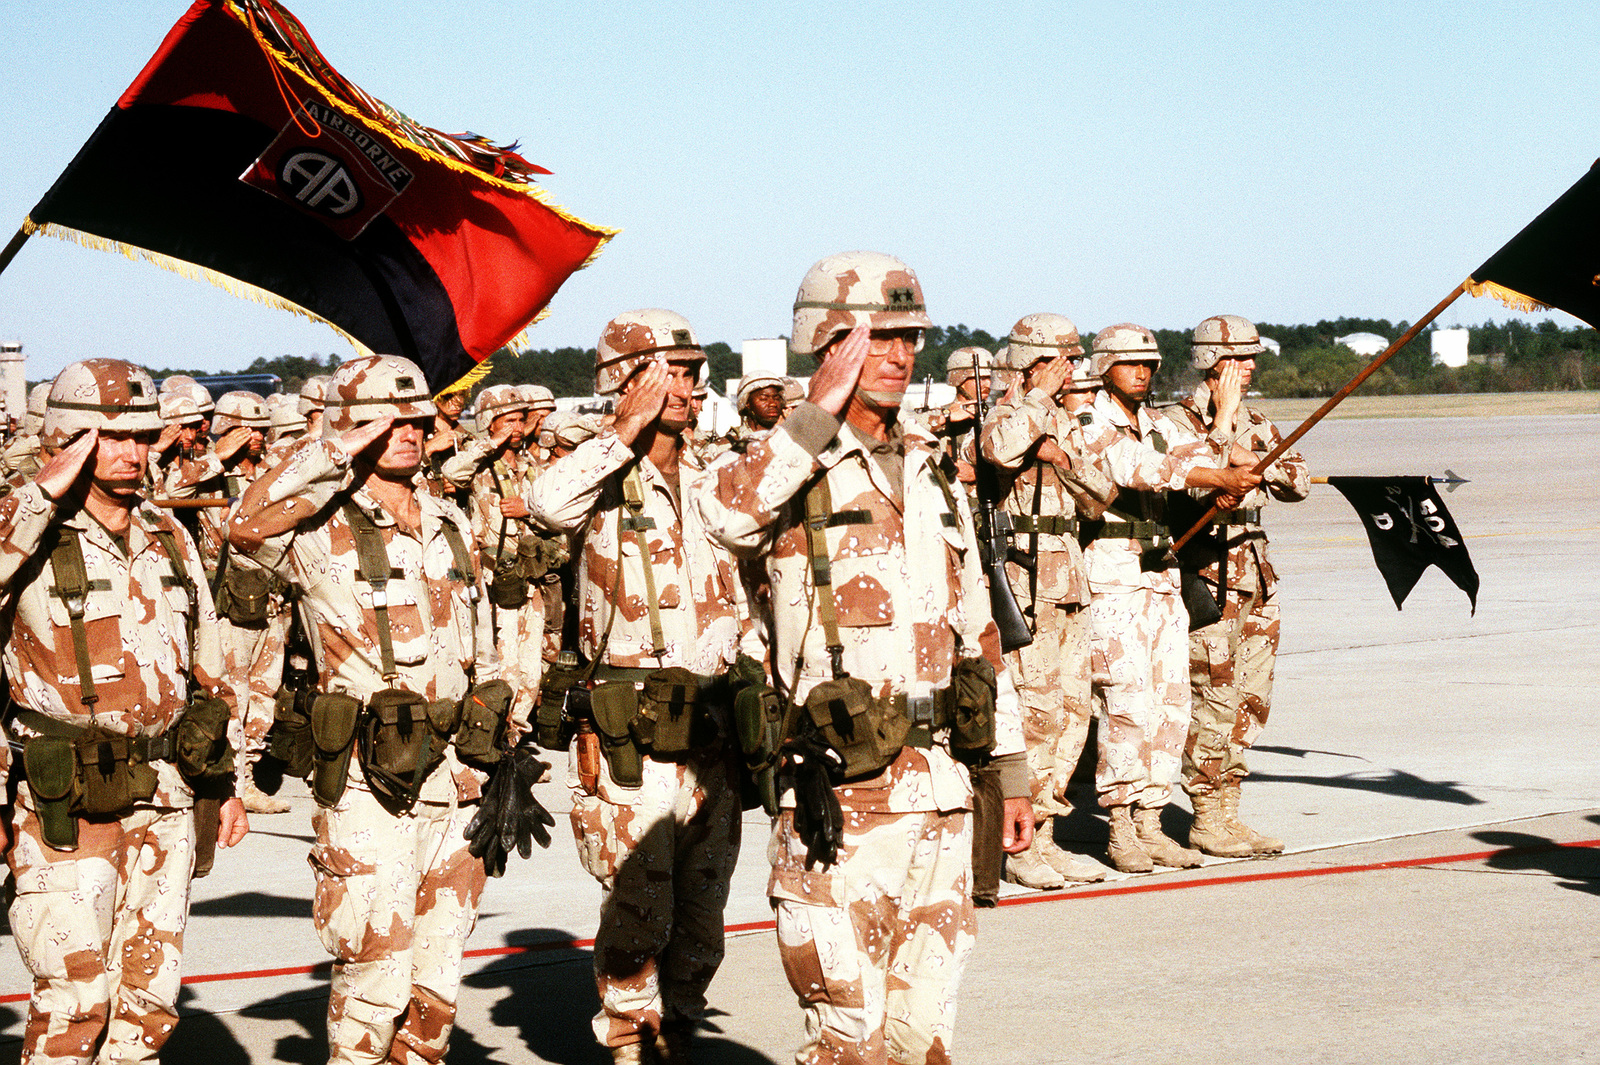 Elements of the 82nd Airborne Division, with commanding officer MAJ